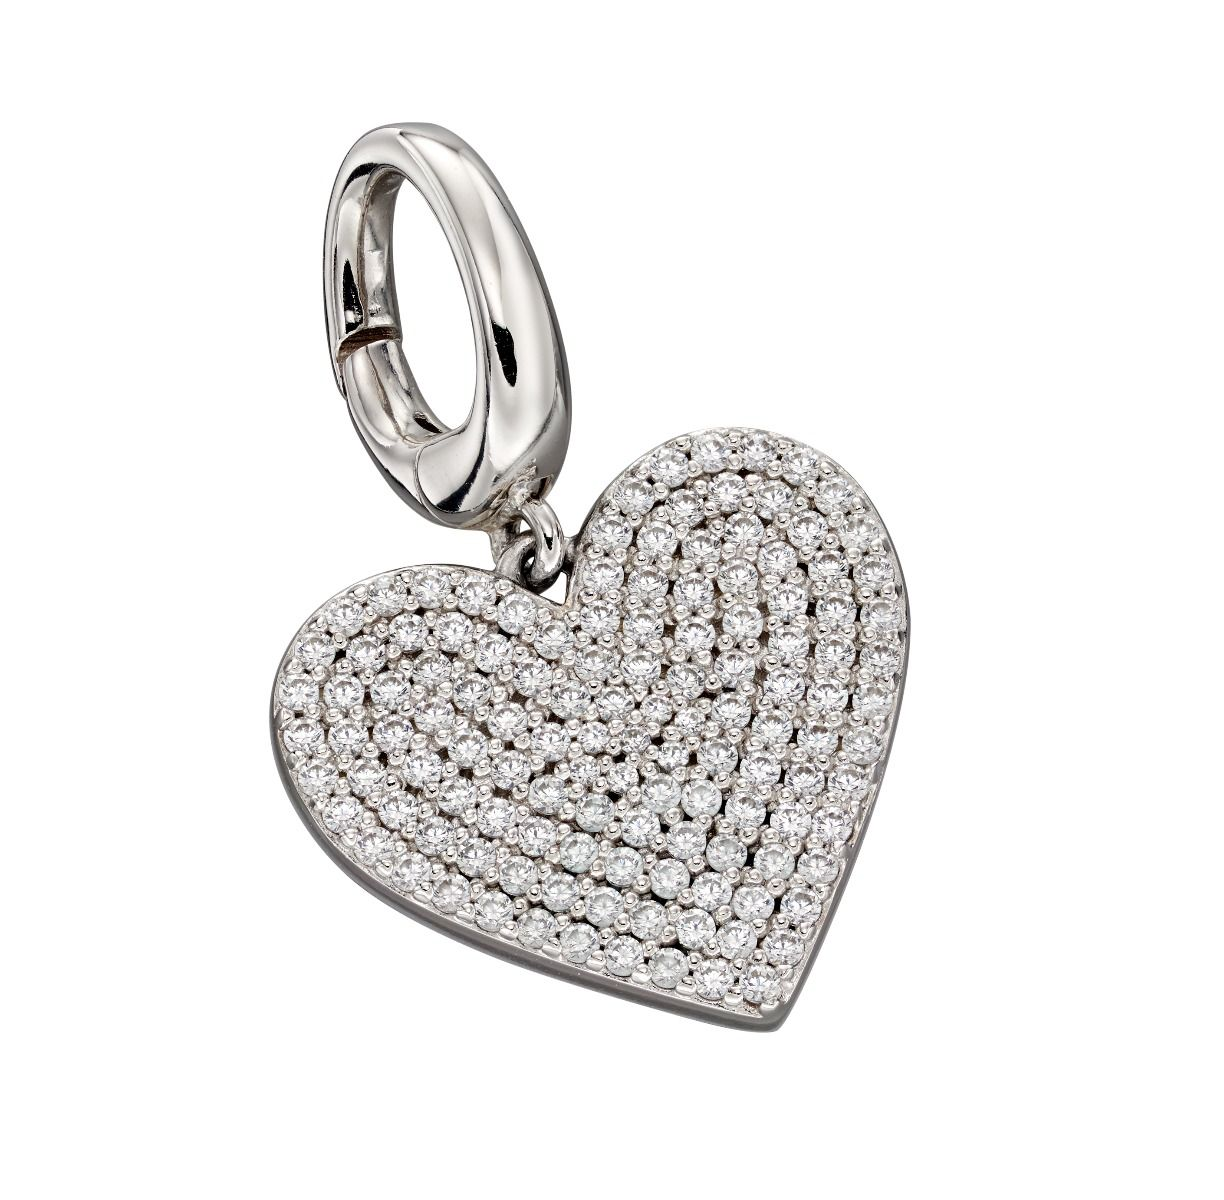 Fiorelli Silver Womens 925 Sterling Silver Pave Cubic Zirconia Bigger Hear Spring Catch Charm